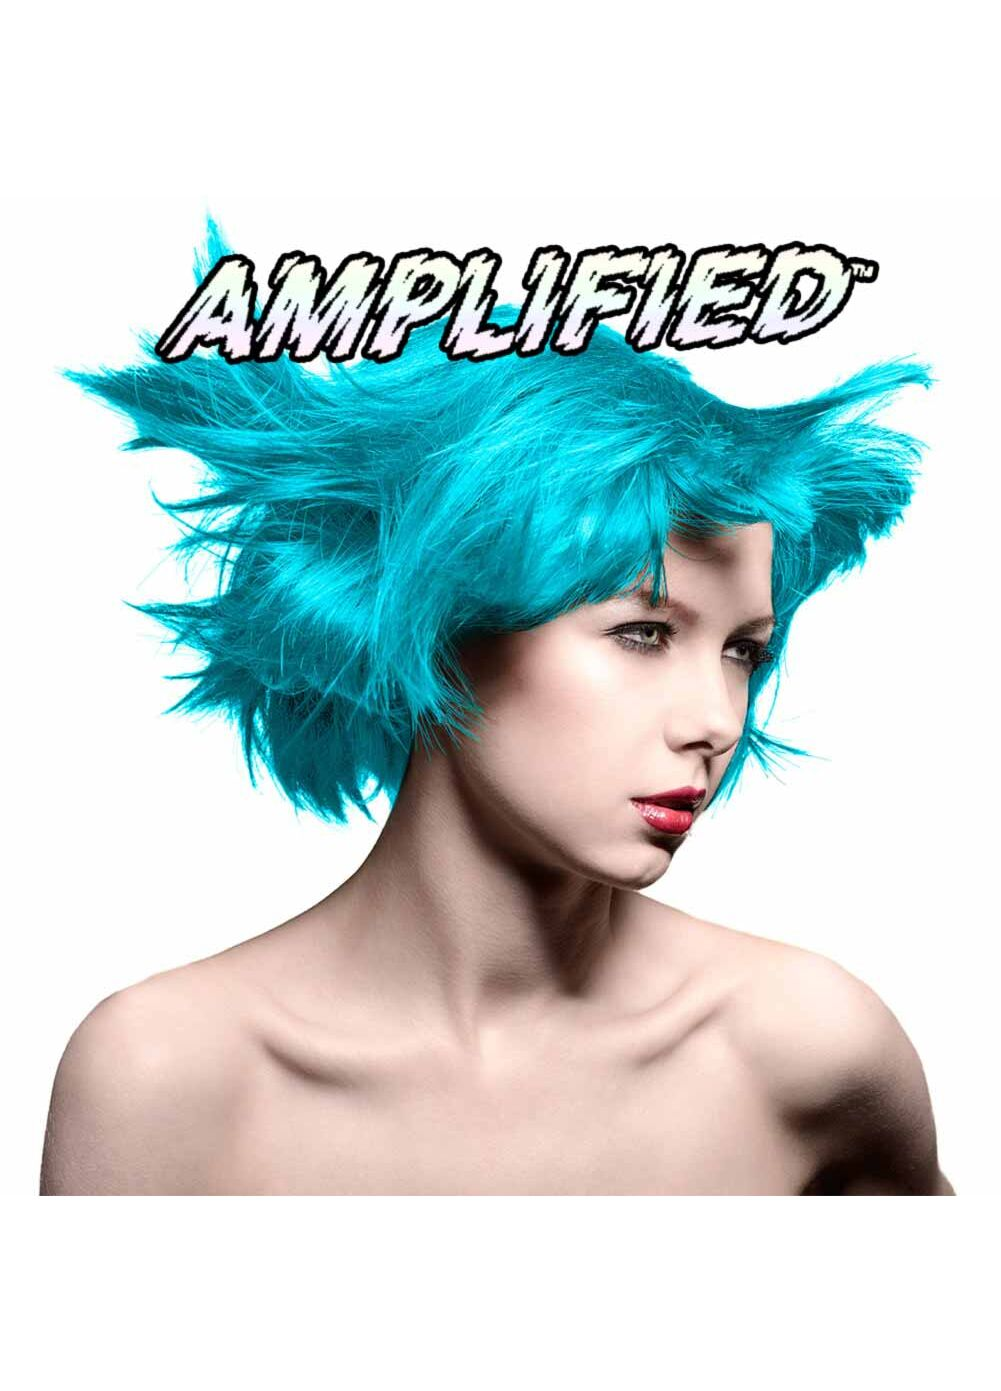 Manic Panic Amplified Semi Permanent Hair Colour EU Formula - Atomic Turquoise - Kate's Clothing